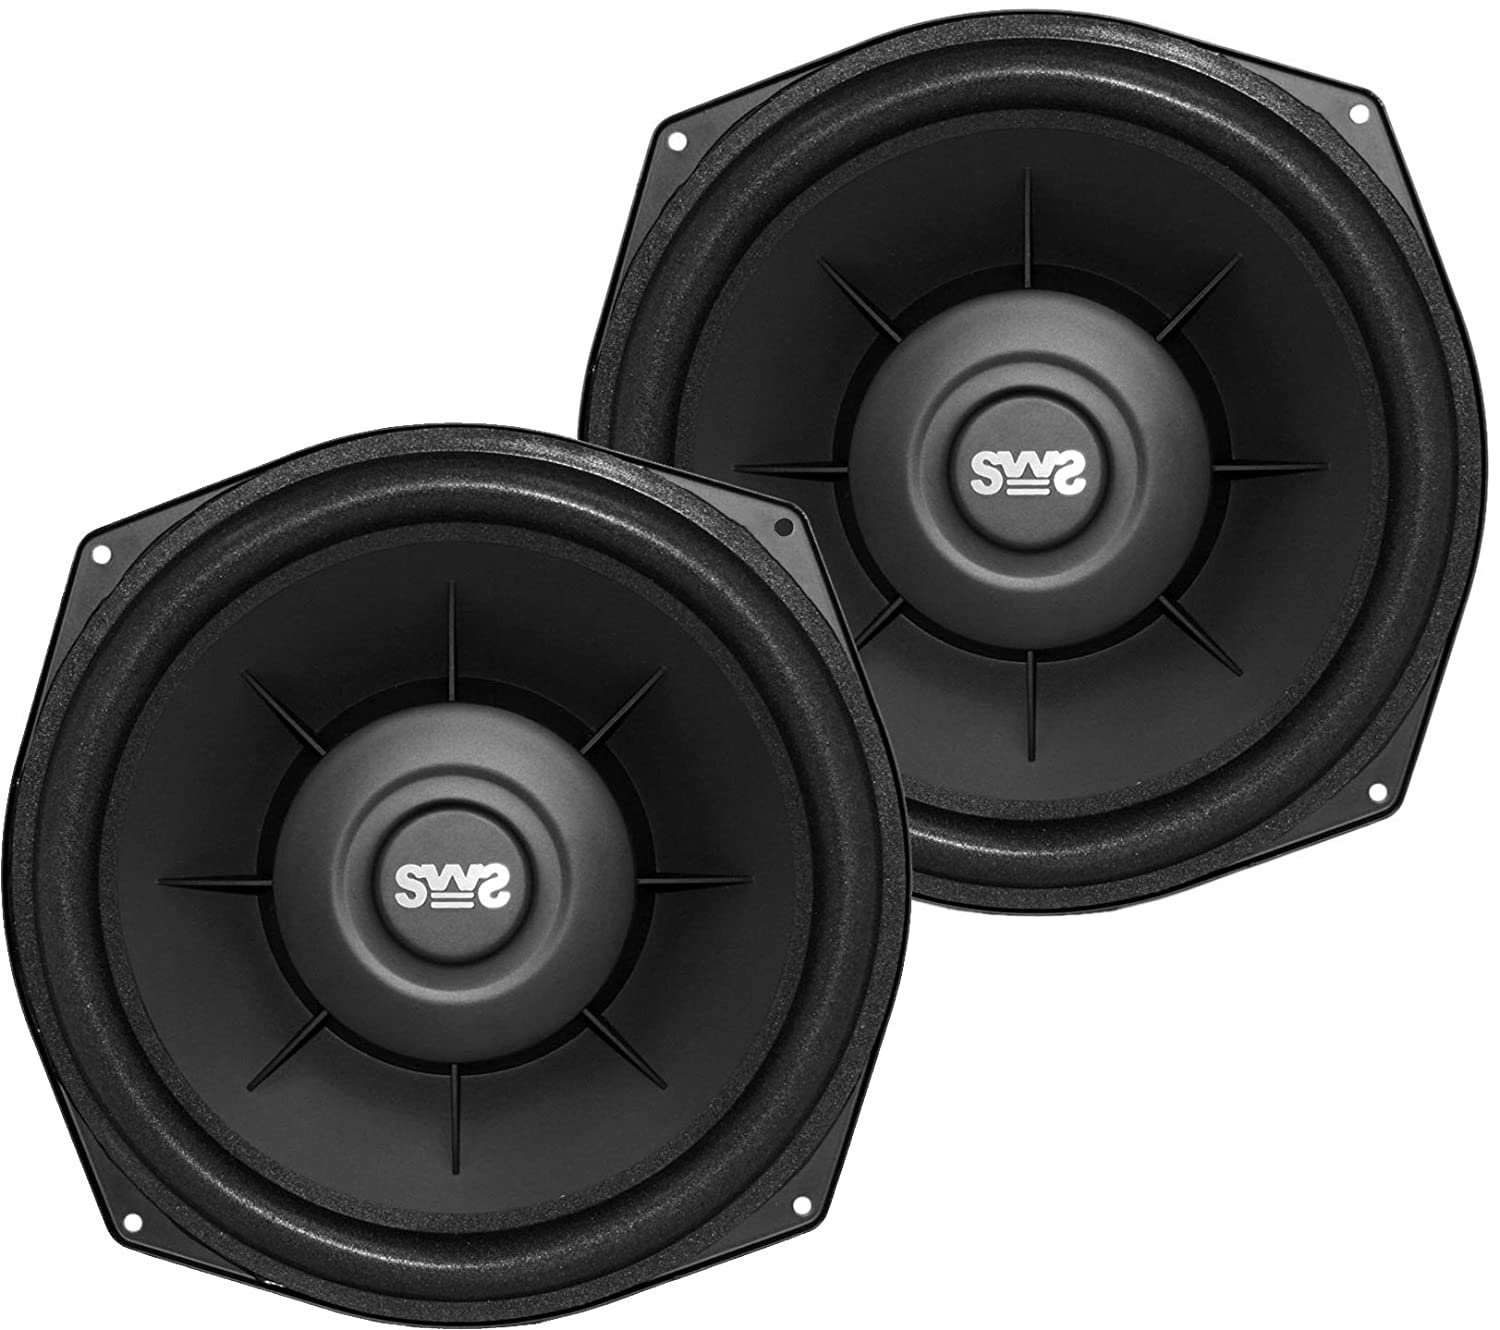 6. Earthquake Sound i82SWS 8-inch Shallow Woofer System Under-the-Seat Subwoofers with Gaskets, 2-Ohm (Pair)